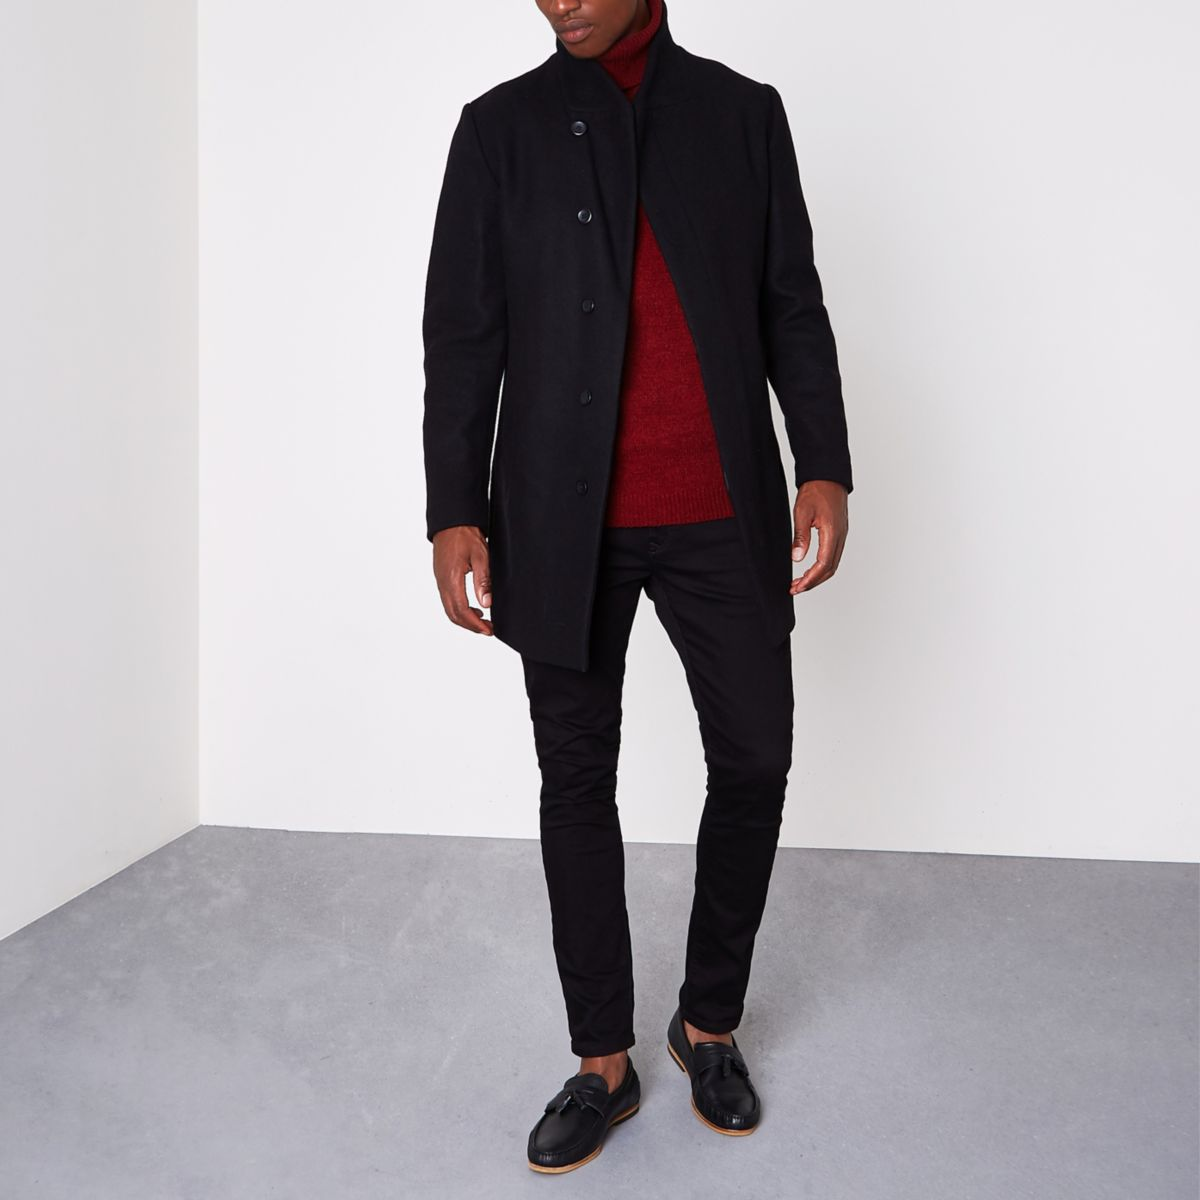 Black Jack & Jones Premium wool blend coat